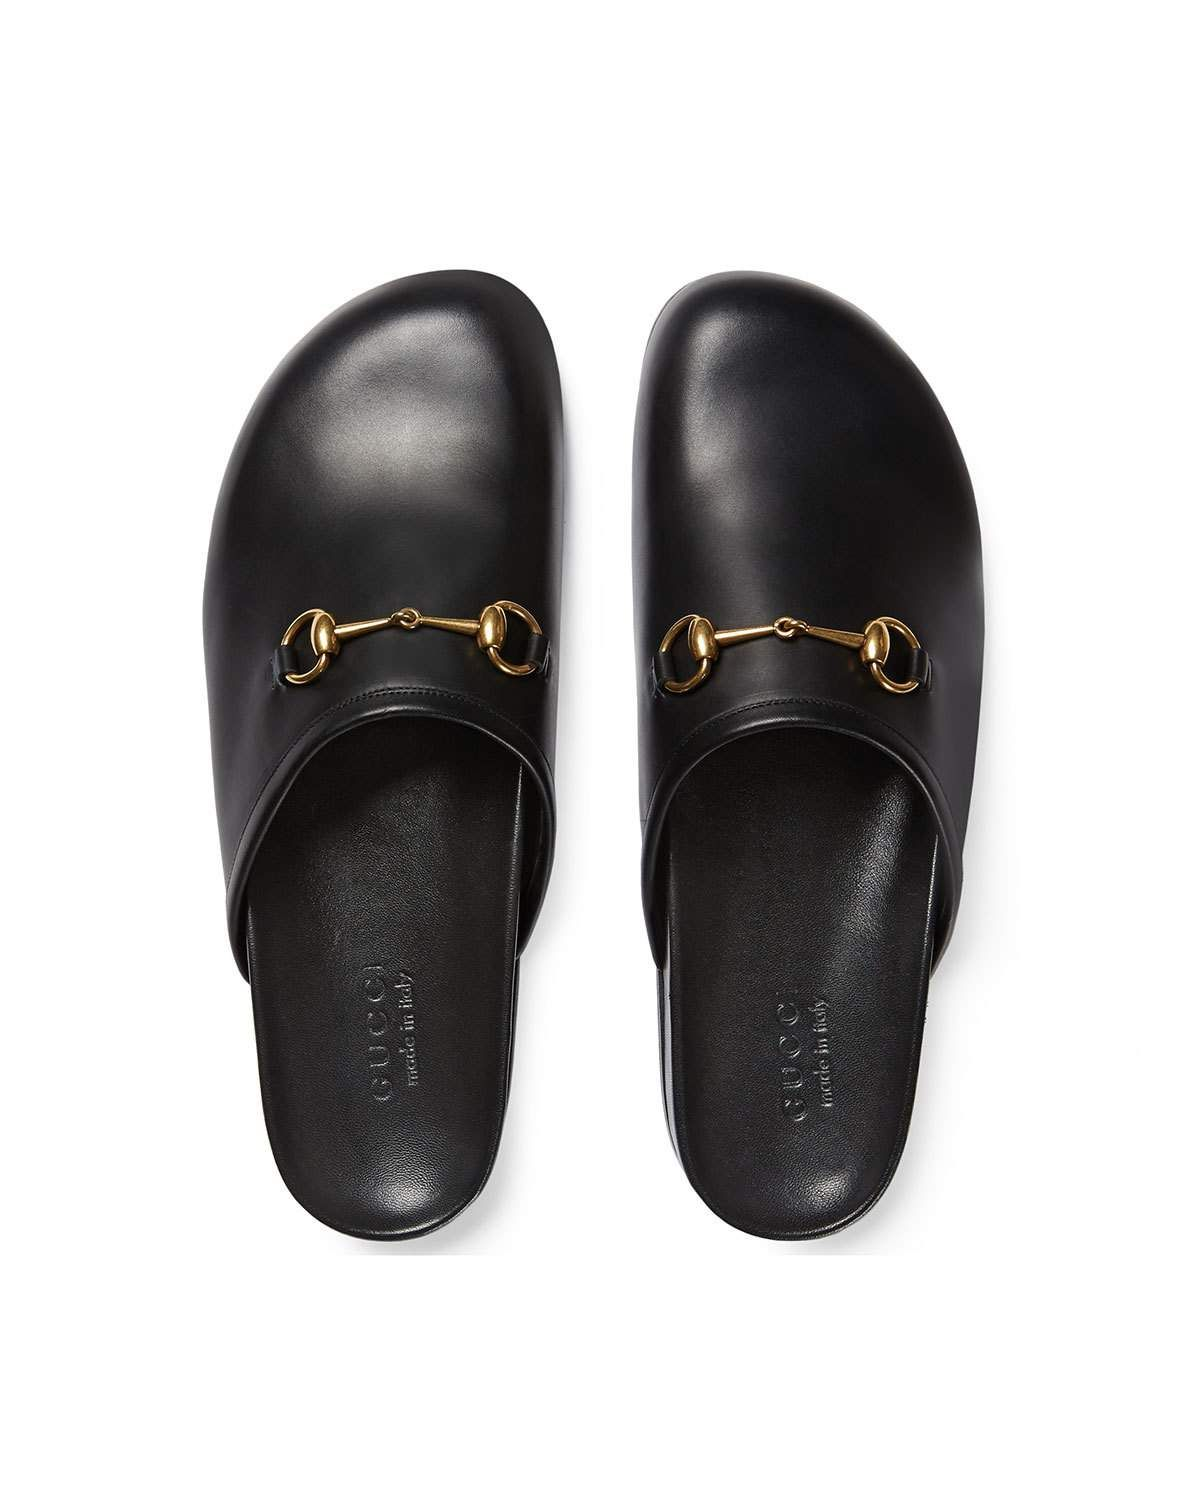 1625825e390 Horsebit Leather Slipper Black | Products | Leather slippers ...